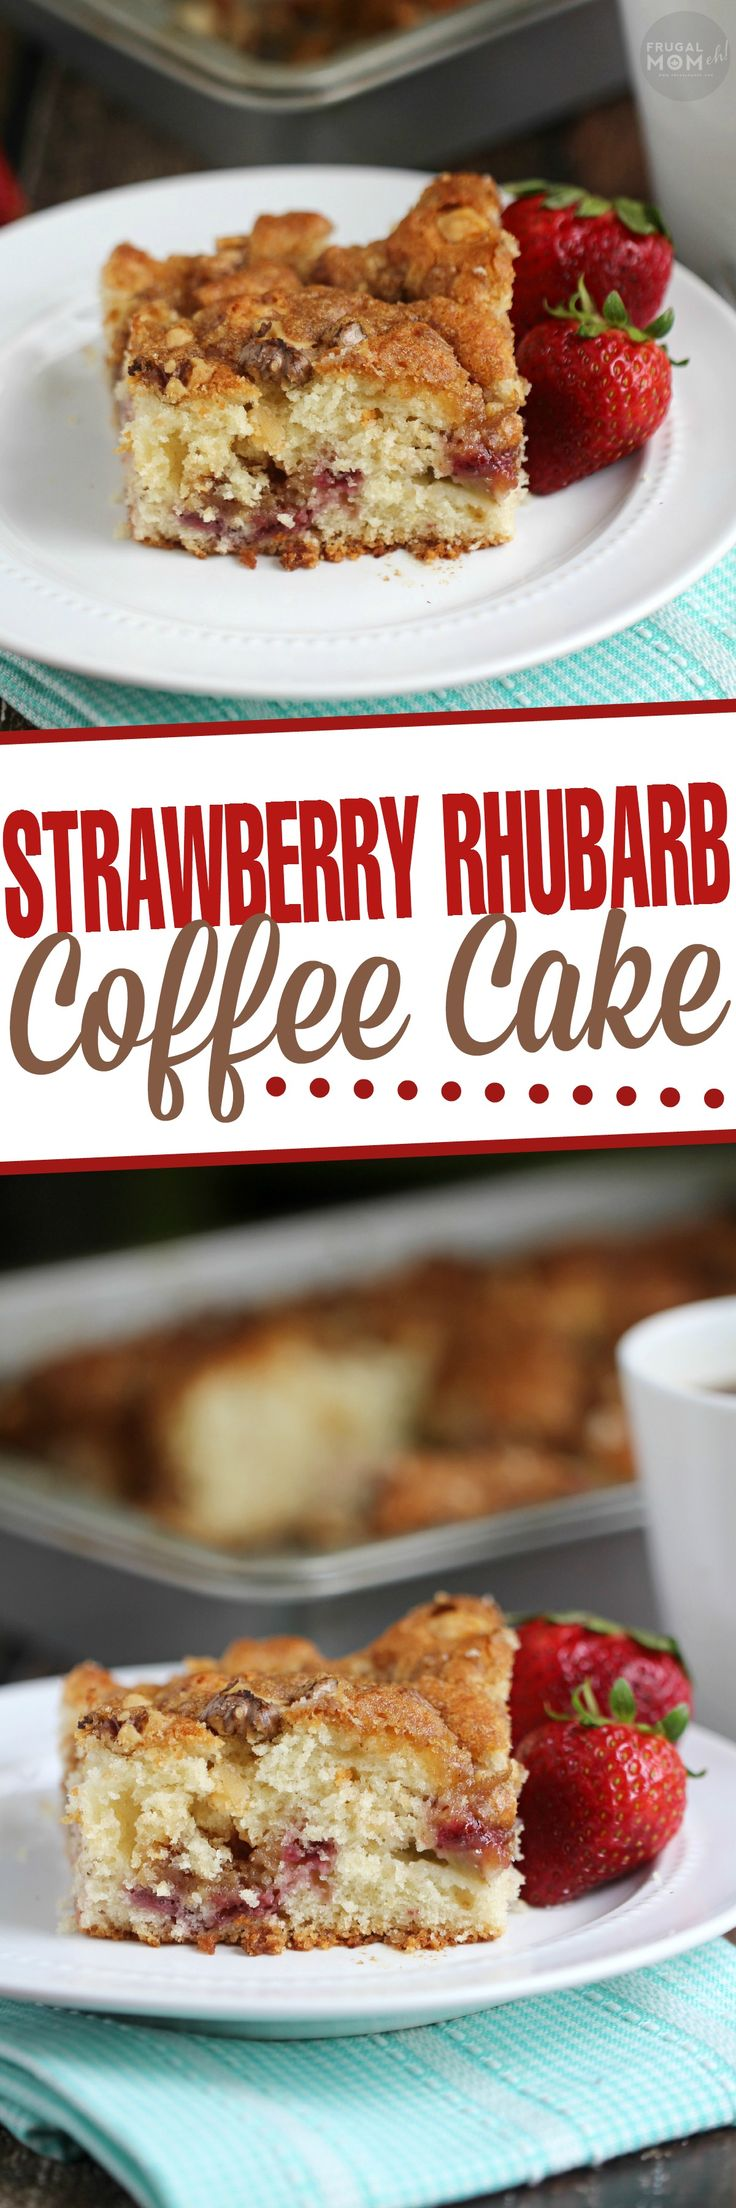 This Strawberry Rhubarb Coffee Cake is a perfect dessert to serve guests.  I won't judge if you eat it for breakfast though.  Our secret!